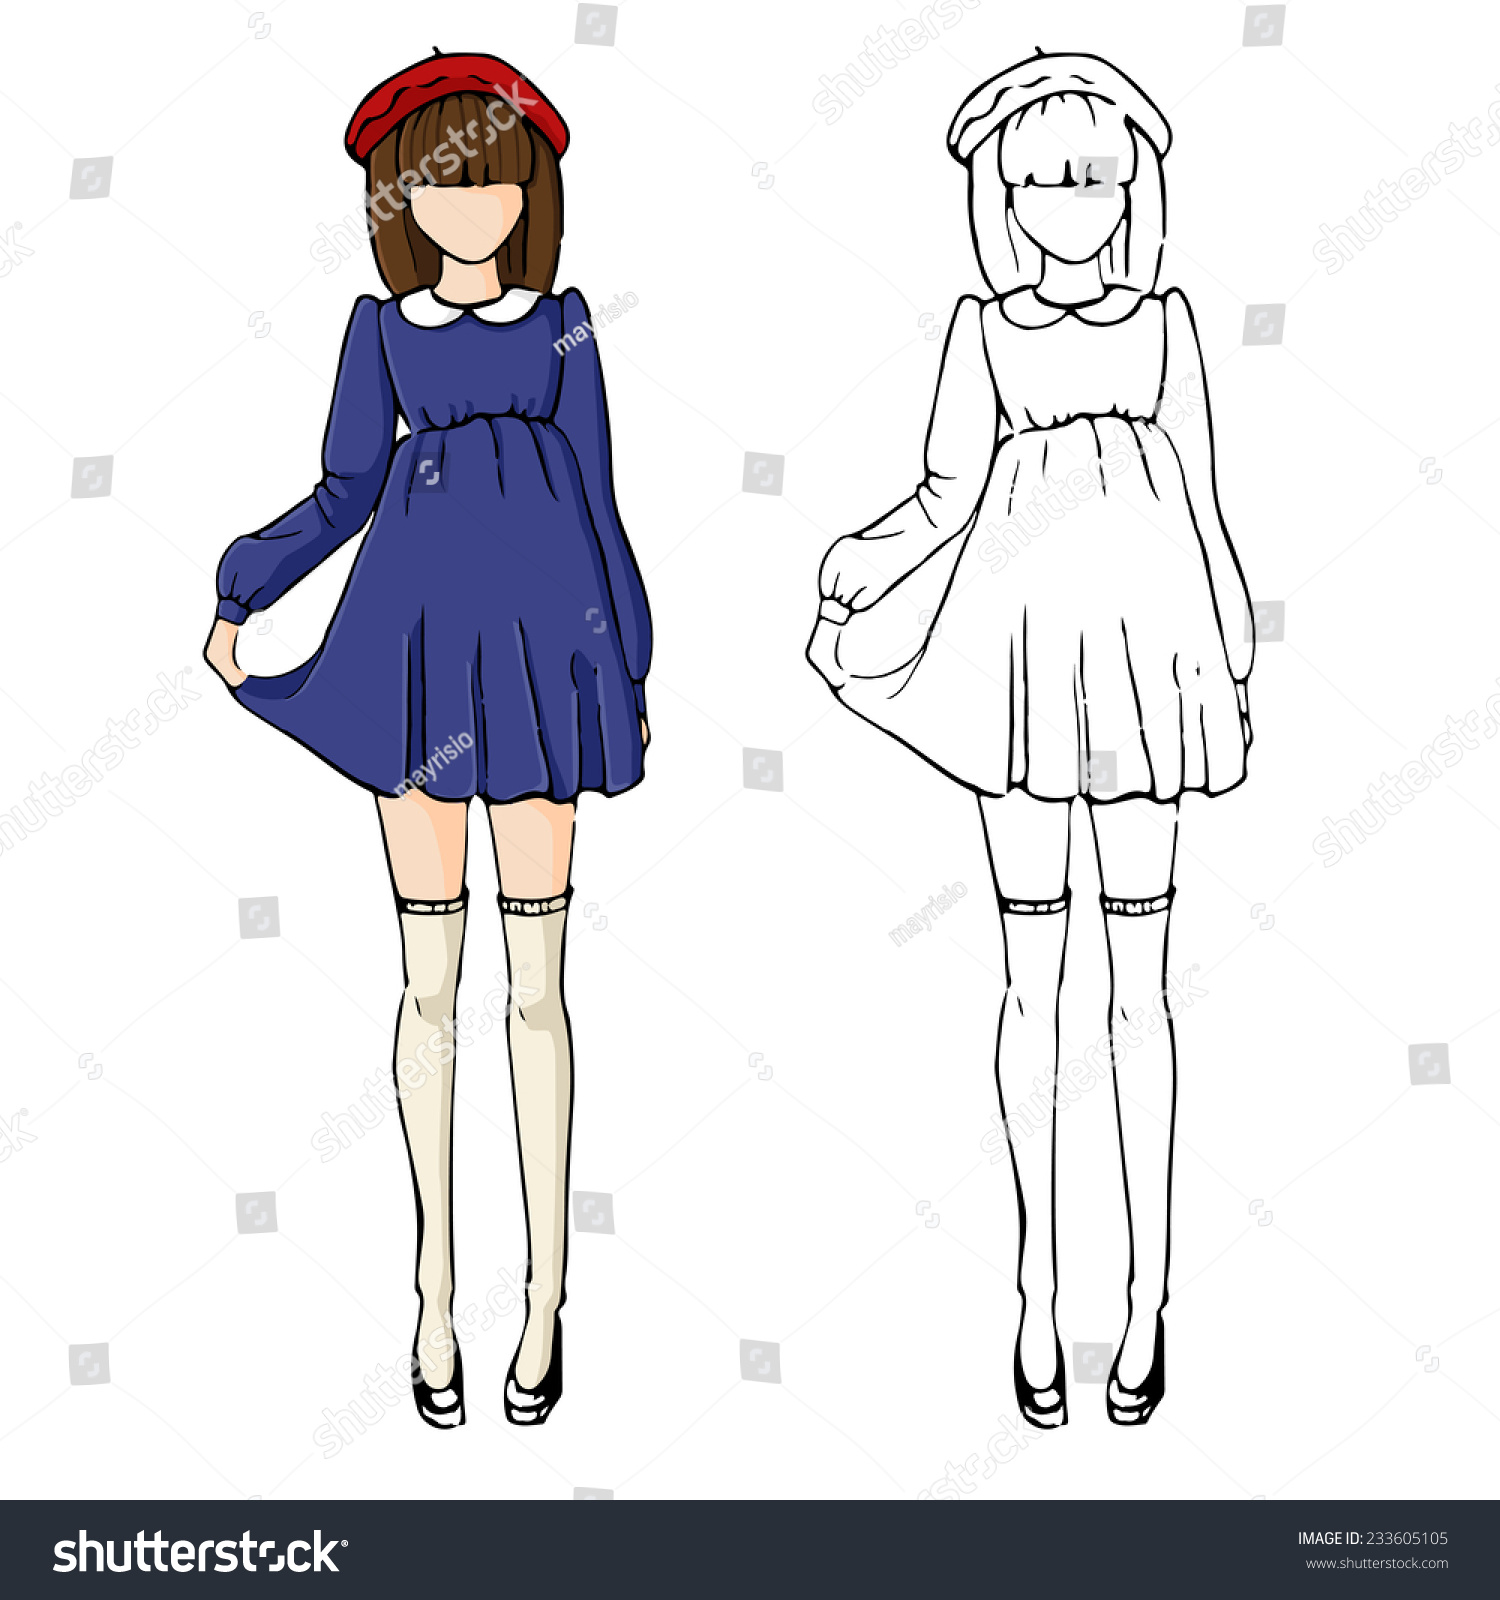 Fashion Sketch Drawing Girls Beautiful Looks Stock Vector 233605105 - Shutterstock